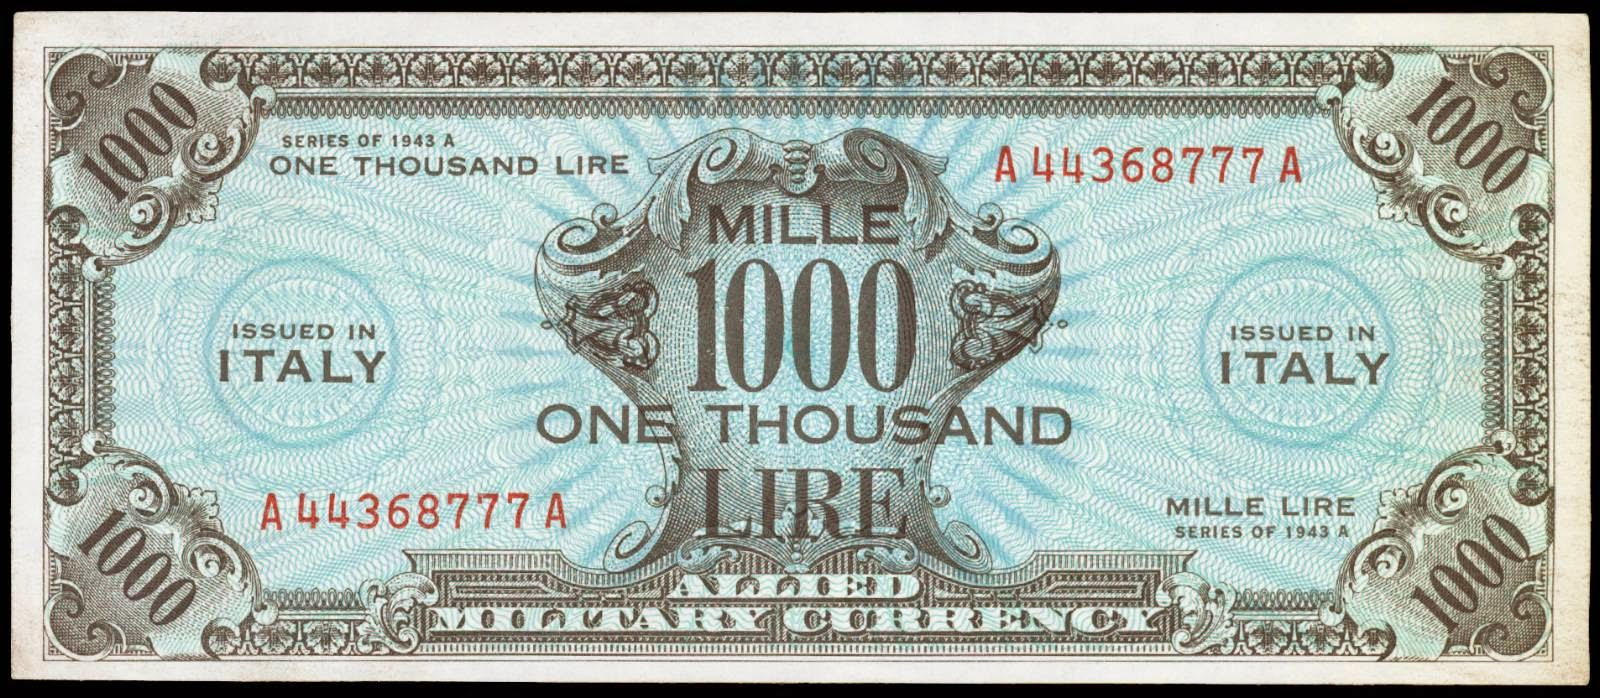 Italy 1000 lire 1943 allied military currencyworld banknotes italy 1000 lire 1943 allied military currency publicscrutiny Images